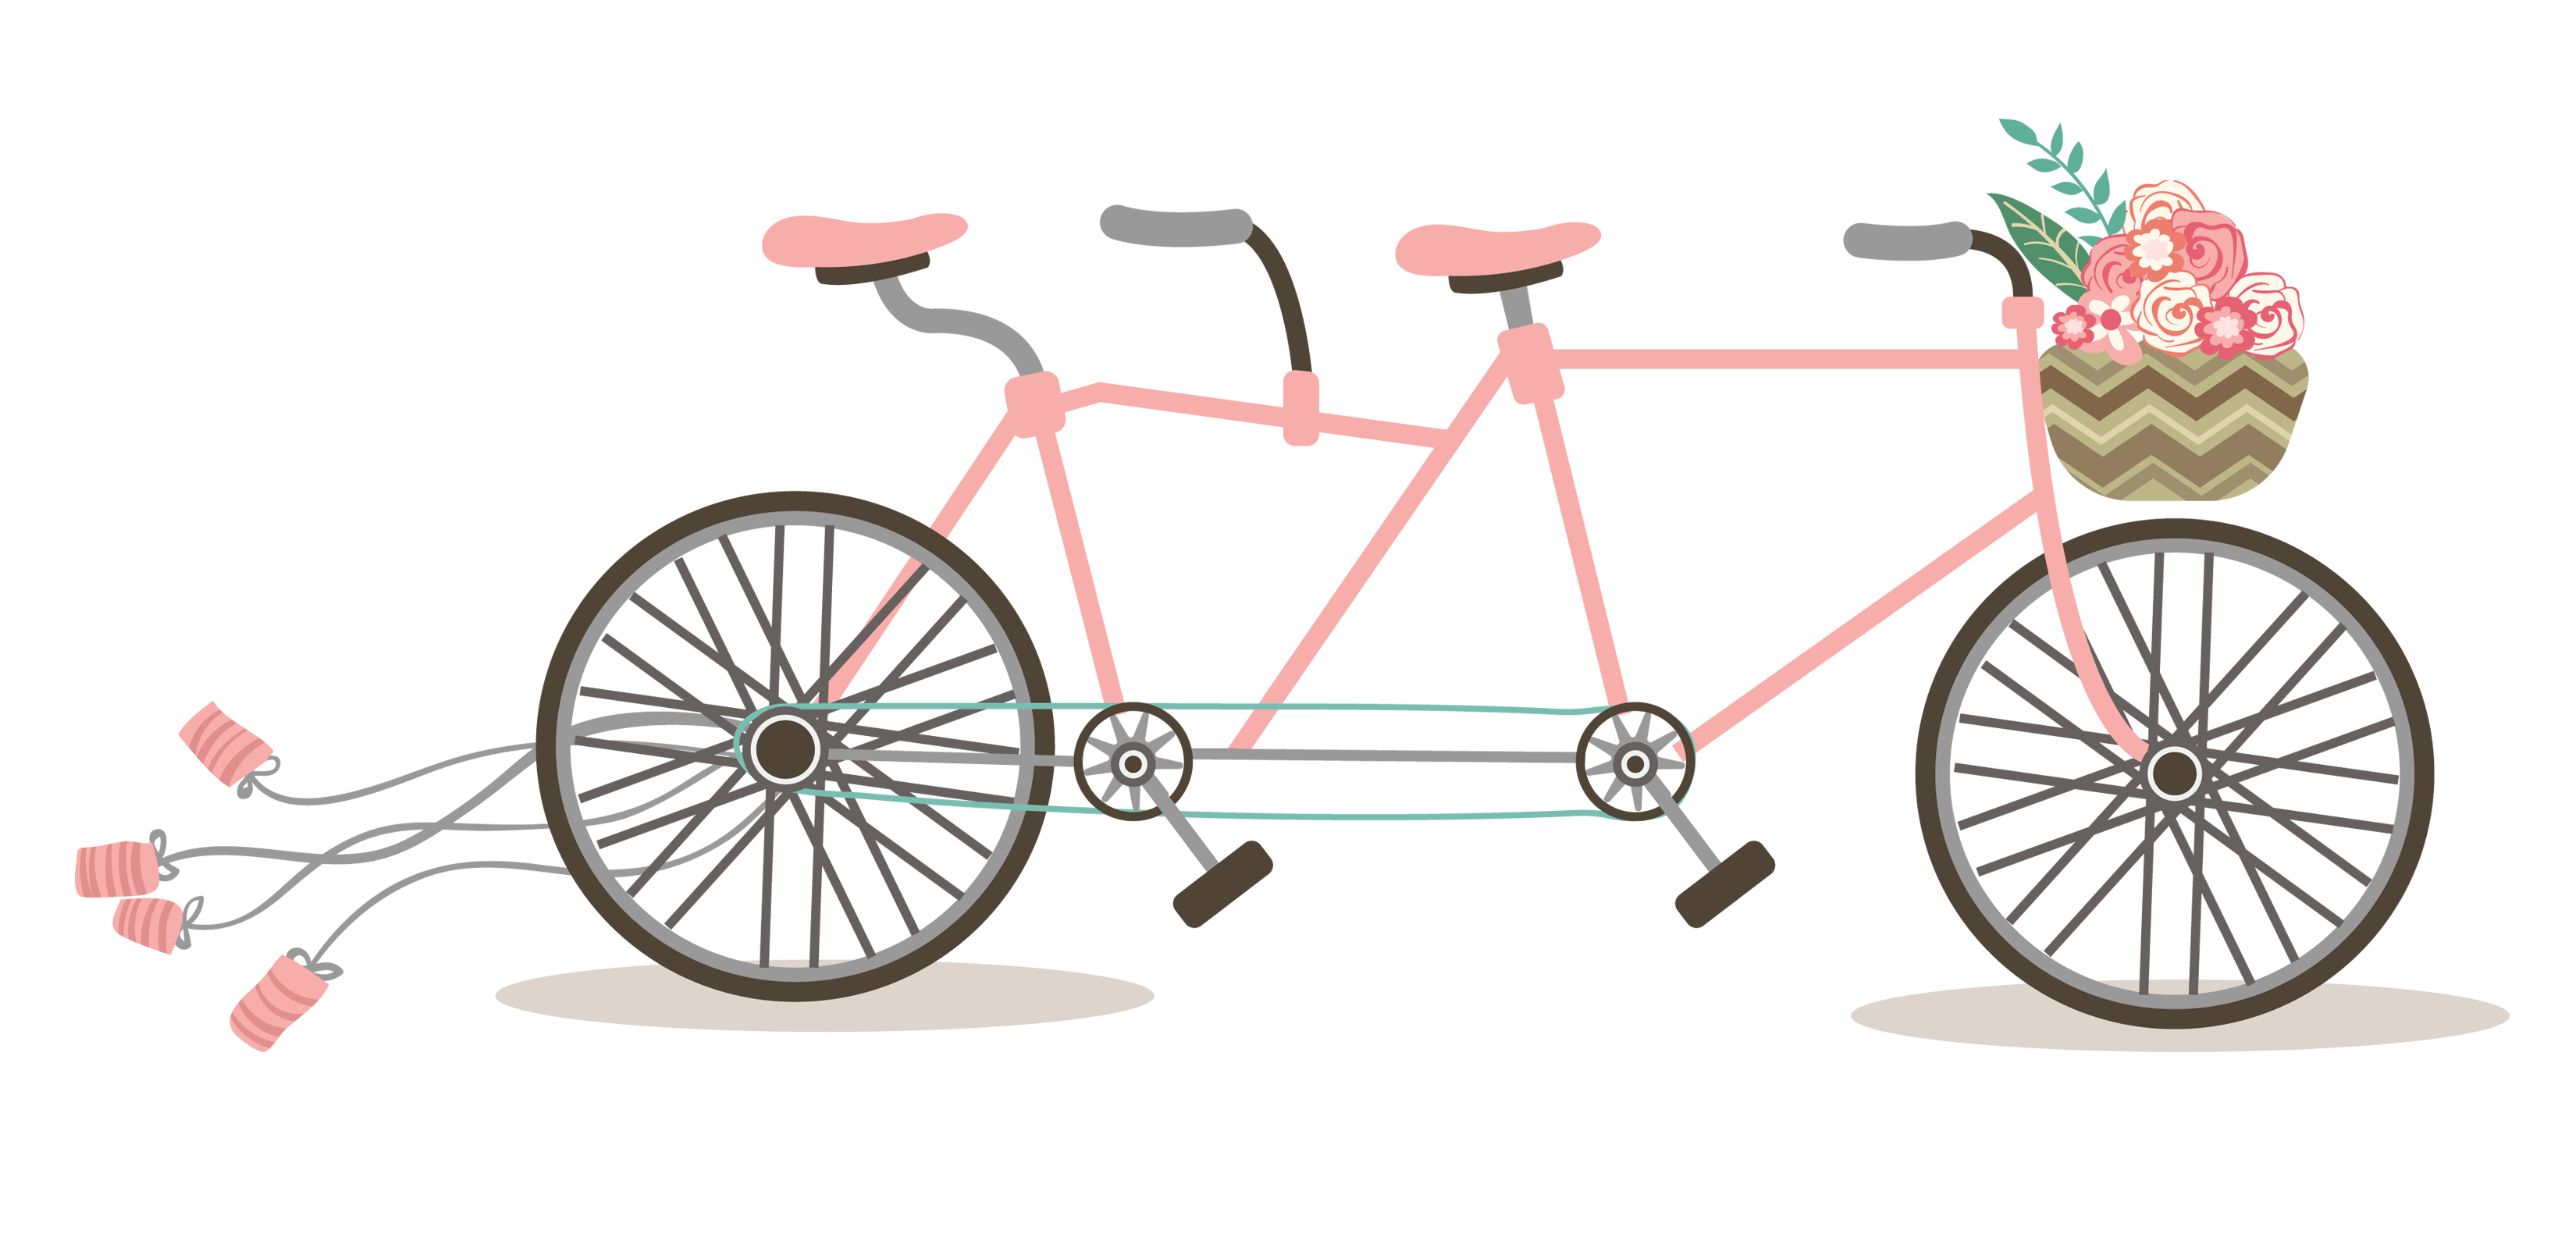 Bicycle with flower basket clipart image royalty free download Bicycle clipart baby FREE for download on rpelm image royalty free download